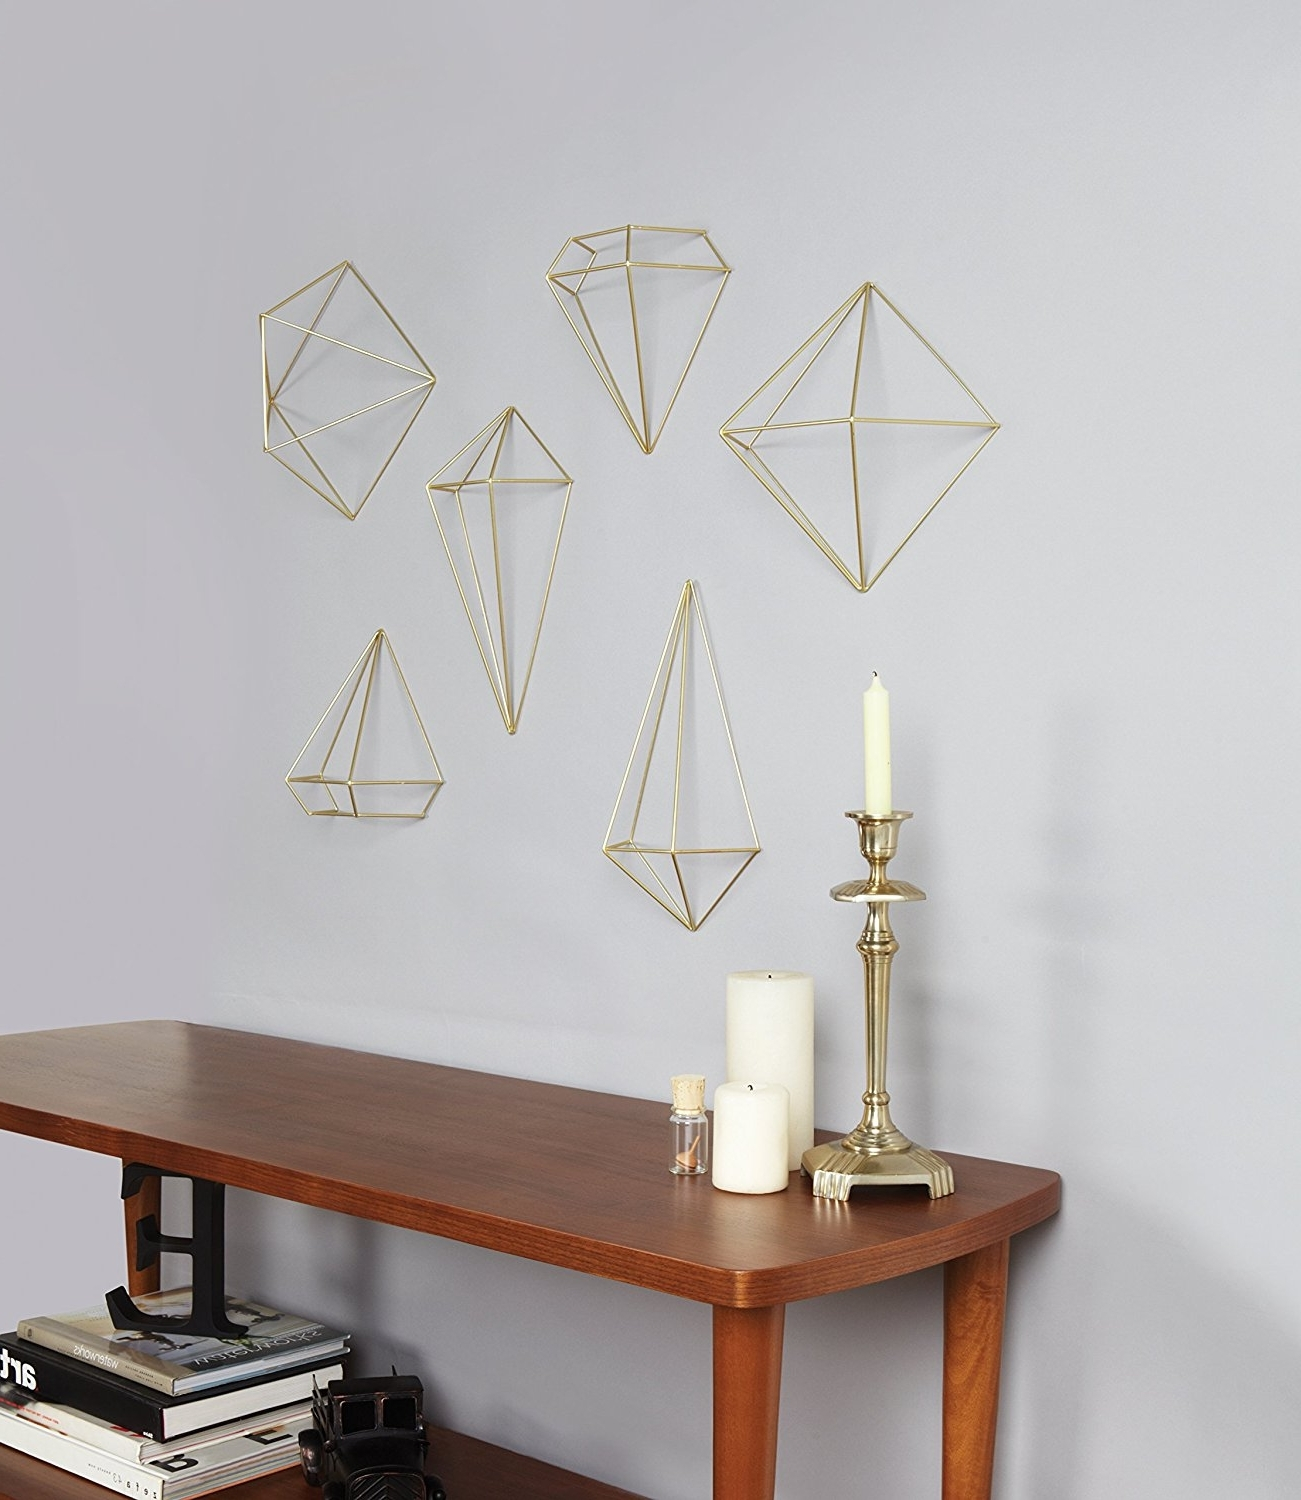 Amazon: Umbra Prisma Decorative Accents, Set Of 6, Brass: Home With Regard To Famous Geometric Shapes Wall Accents (View 4 of 15)